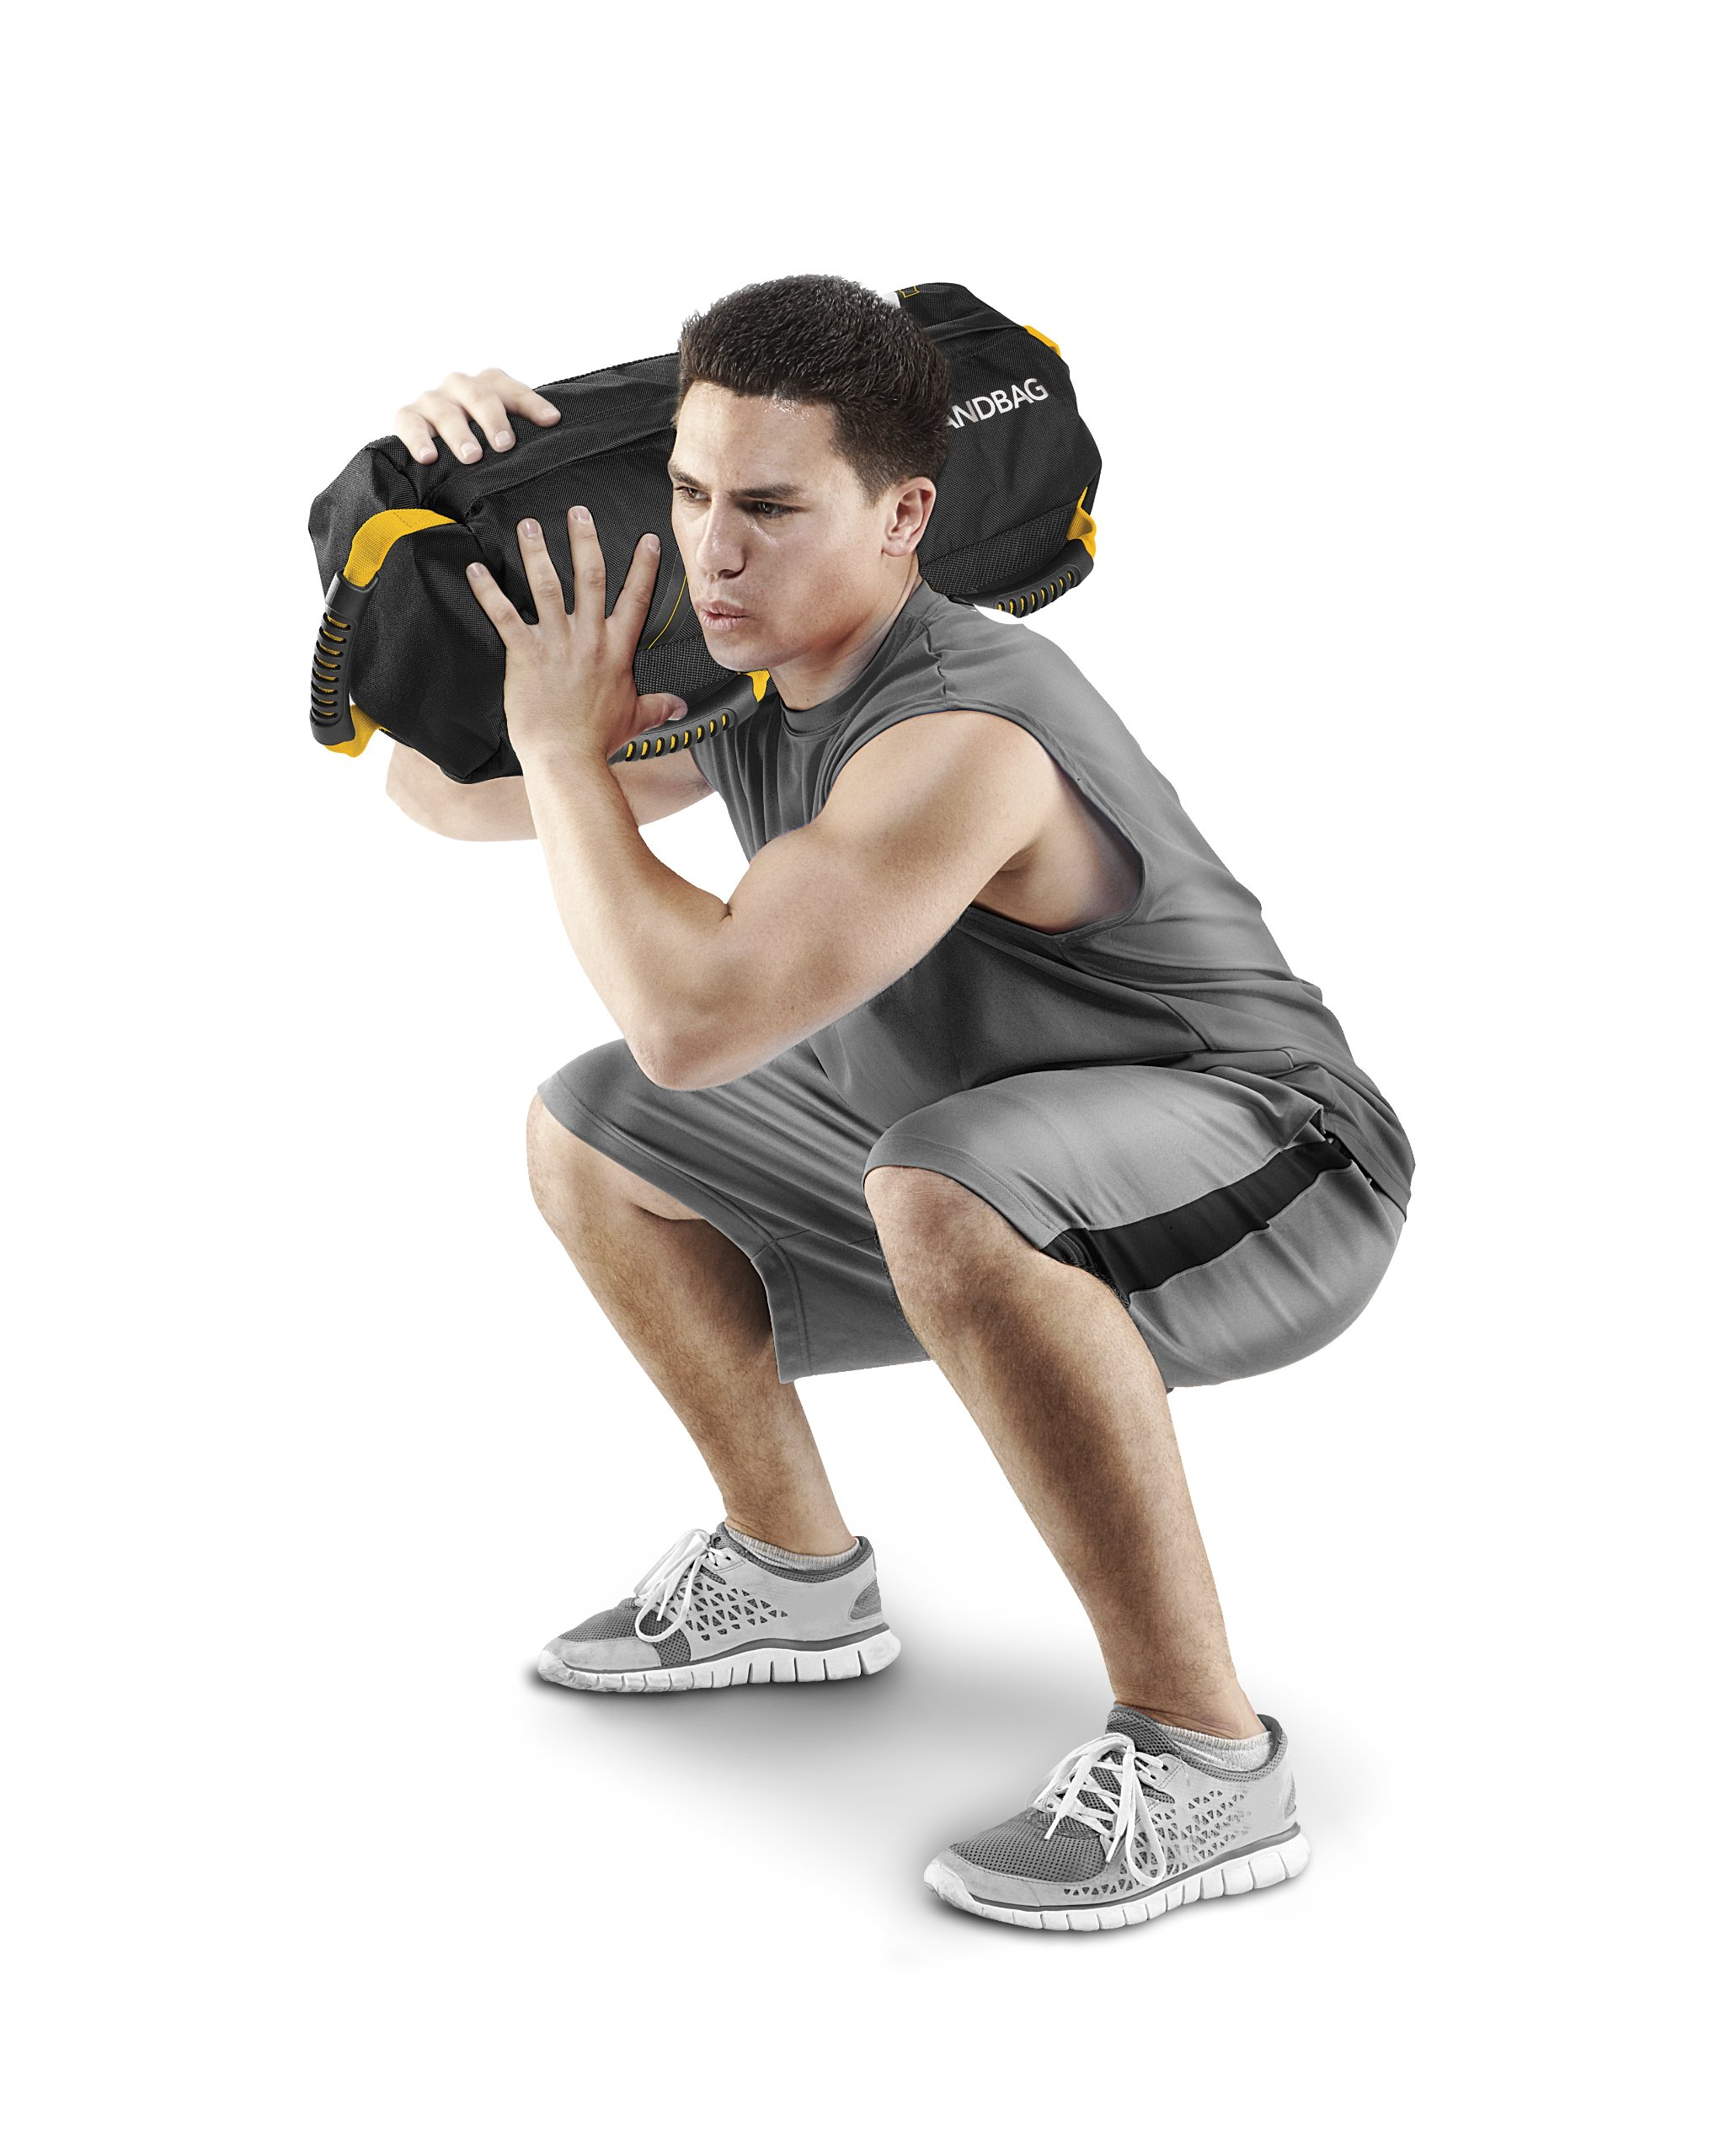 SKLZ Super Sandbag - Heavy Duty Training Weight Bag by SKLZ (Image #8)